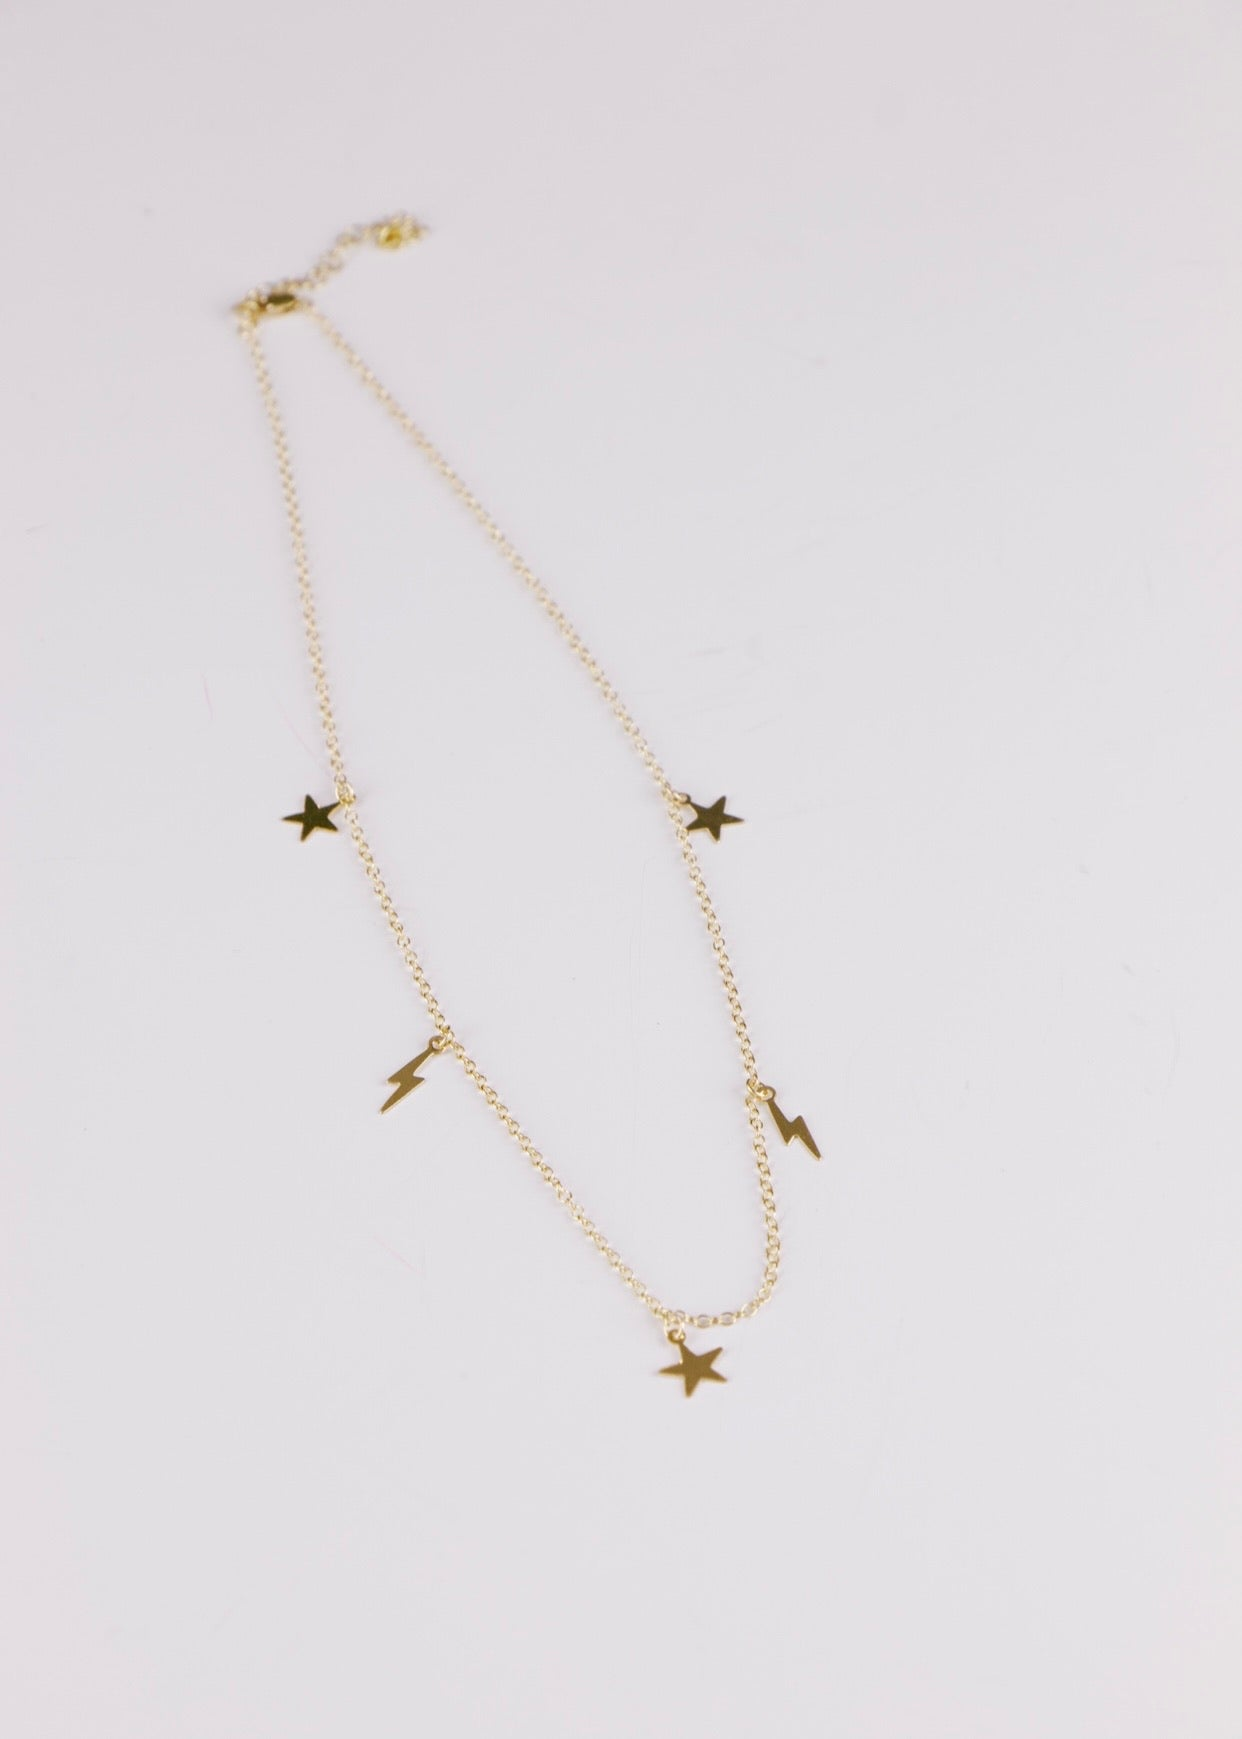 GOLD LIGHTING BOLTS & STARS NECKLACE